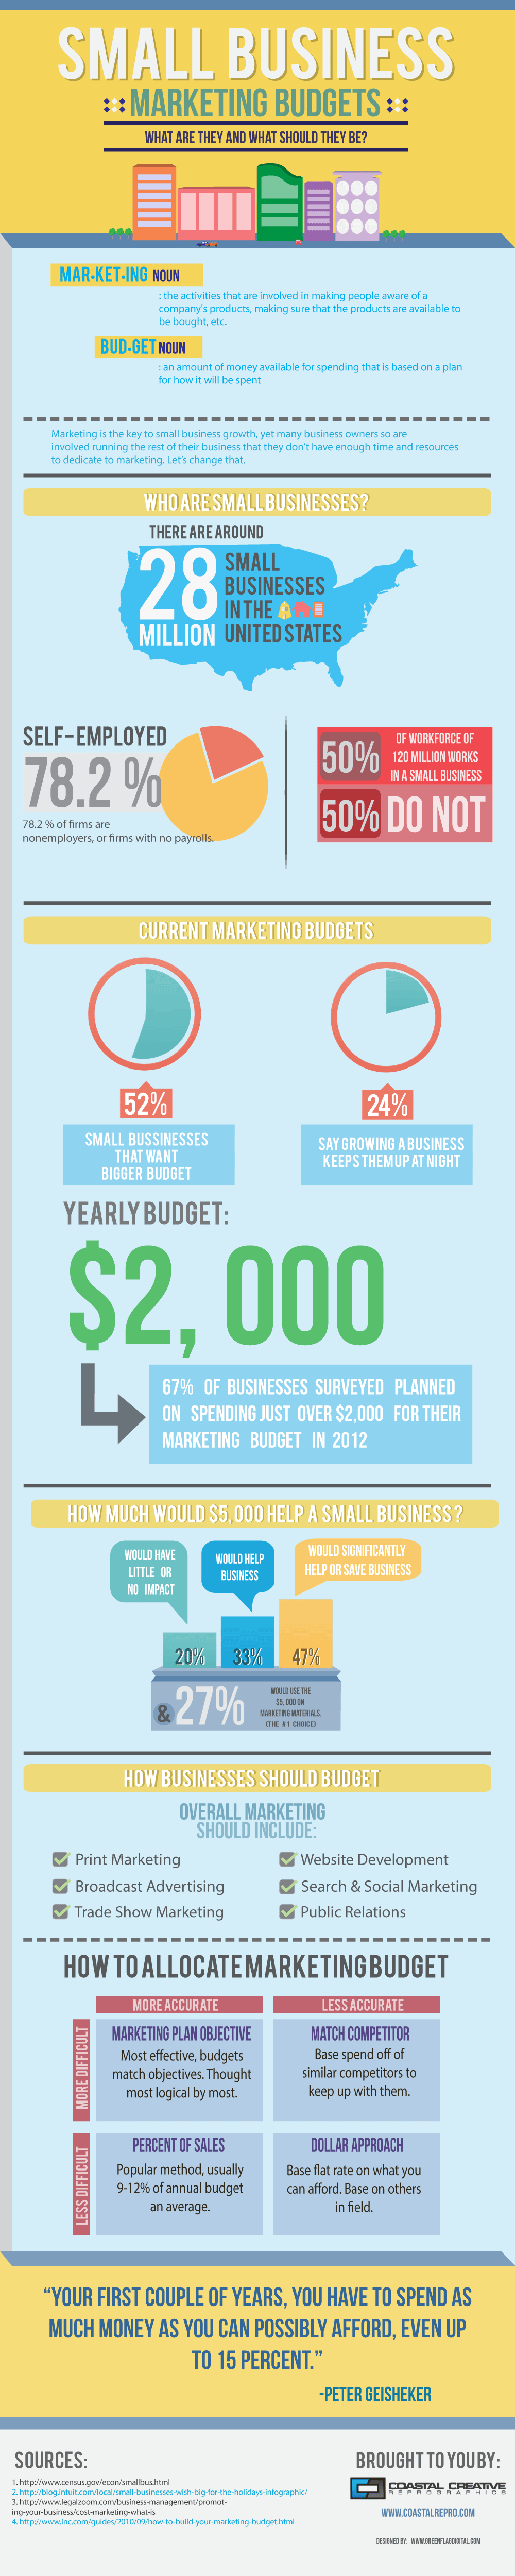 Guide to Small Business Marketing Budgets